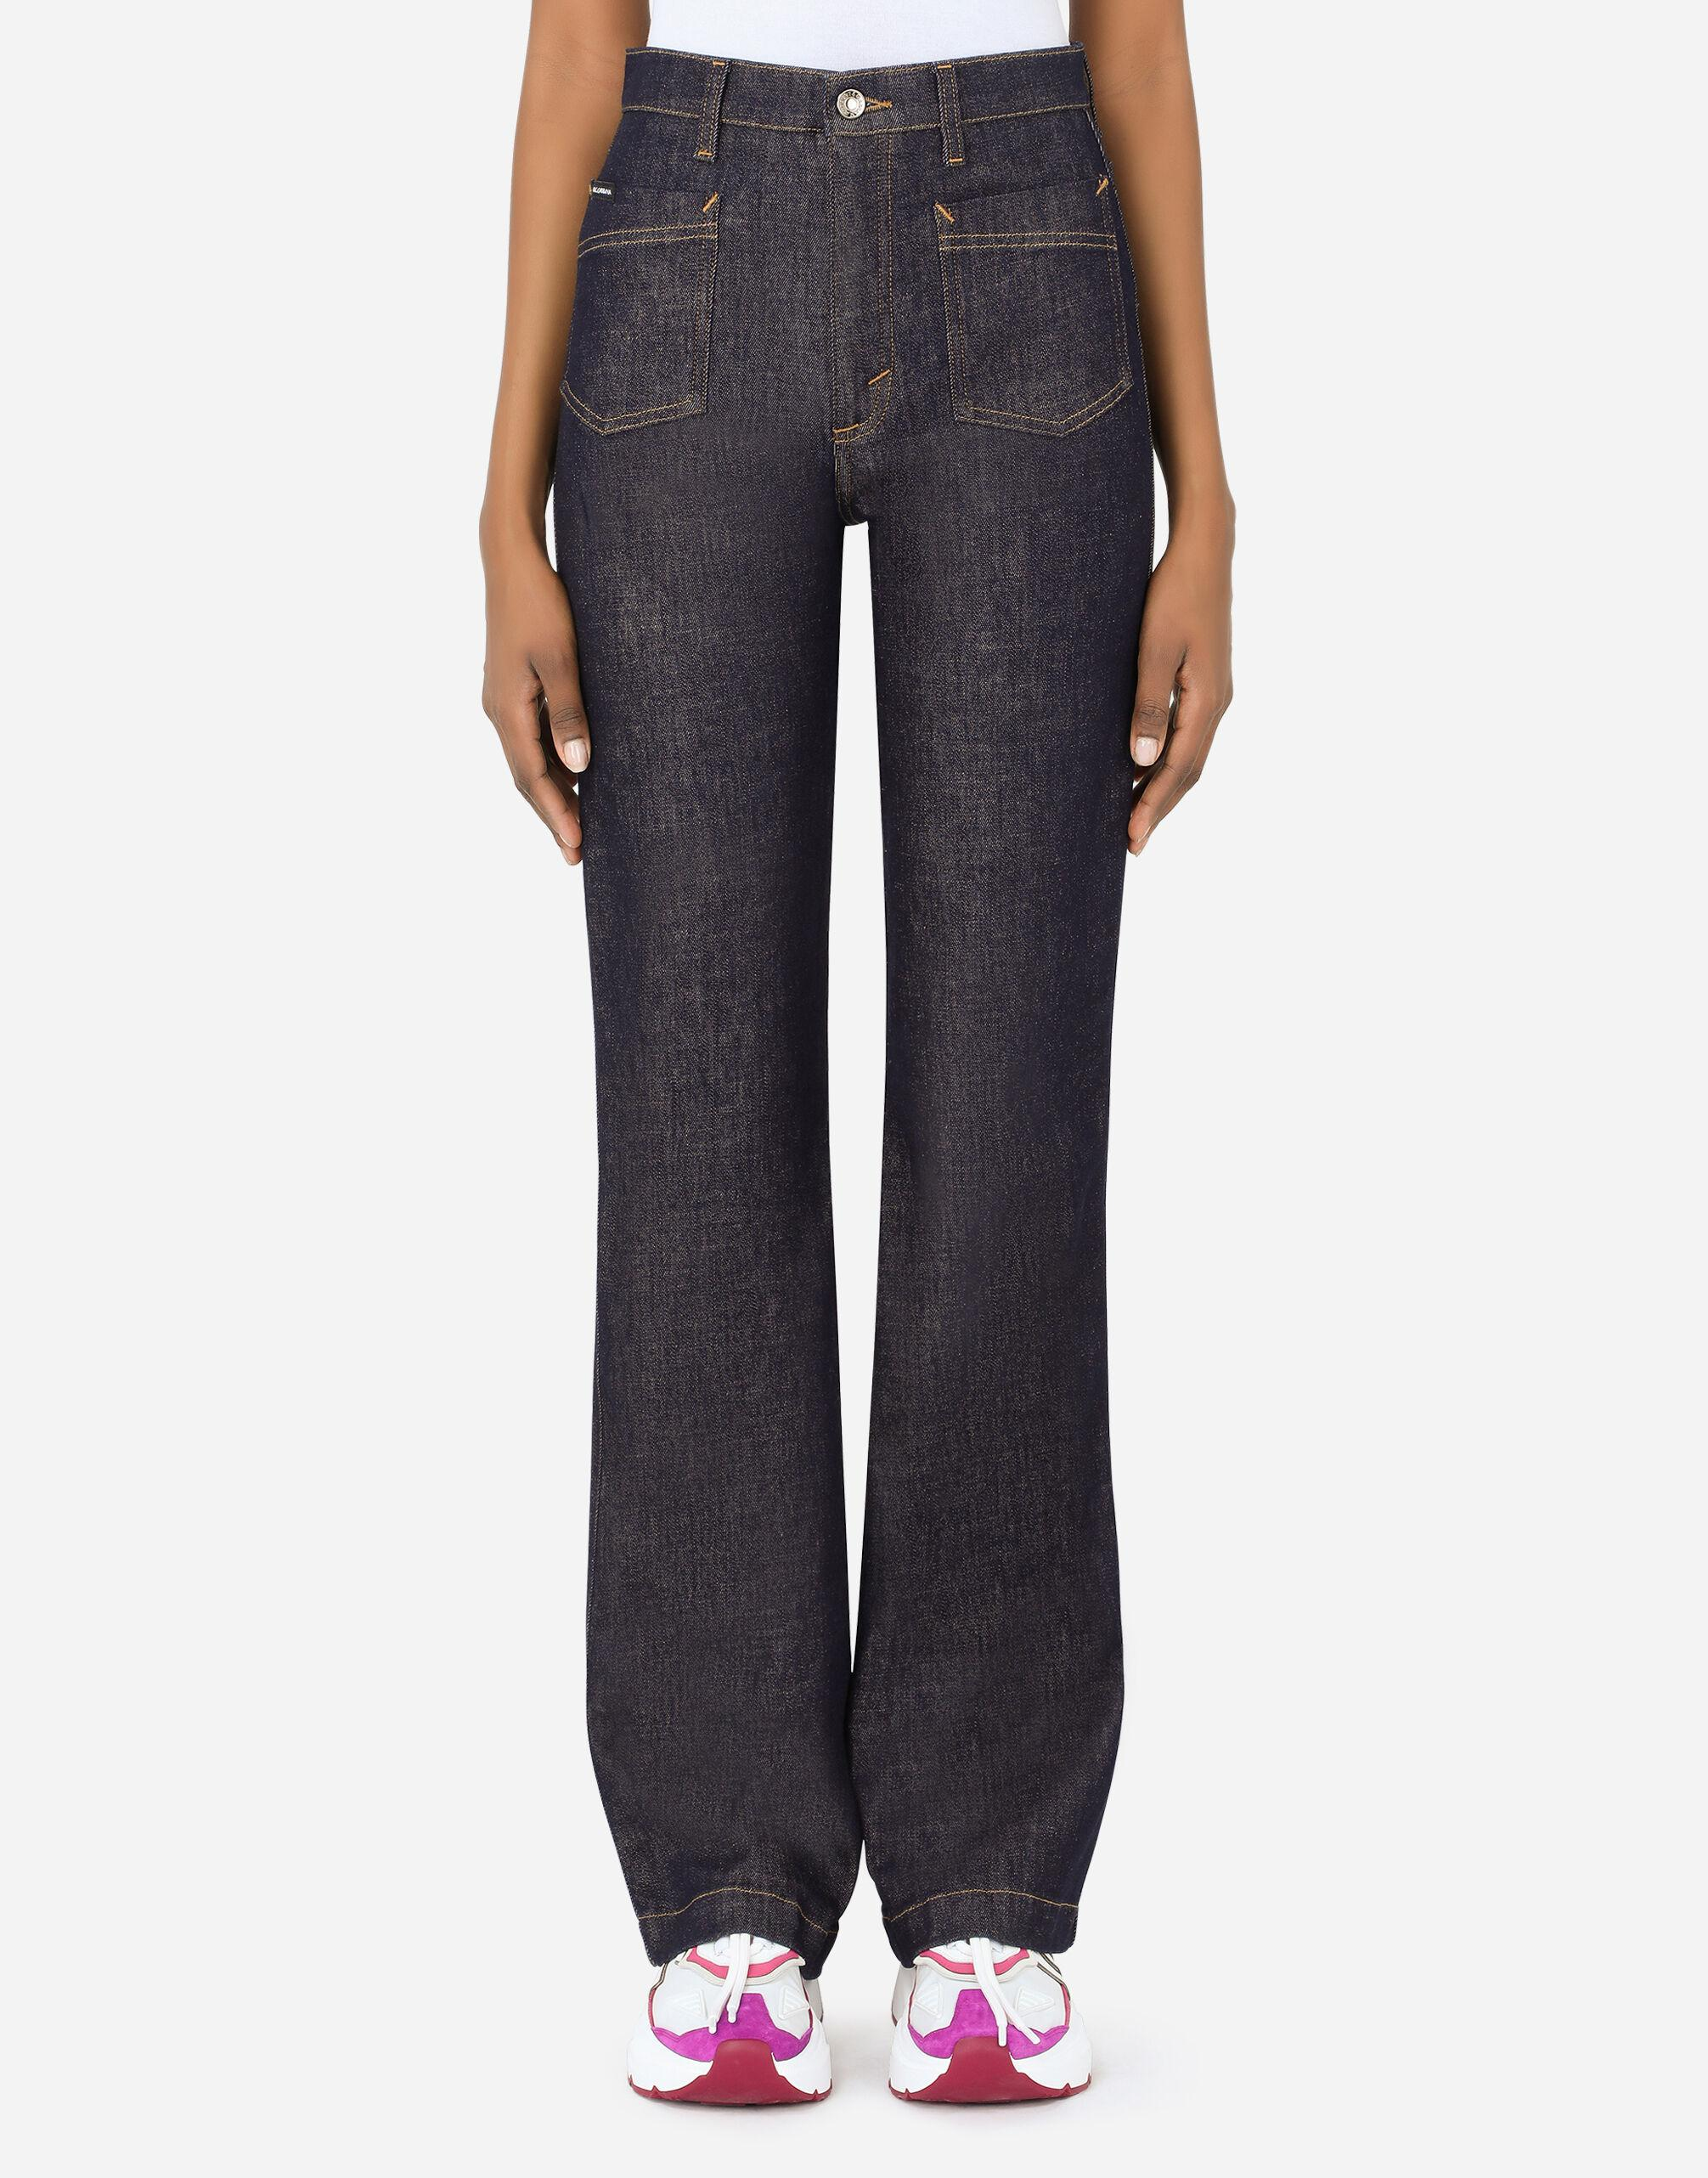 Flared jeans with tobacco-colored stitching